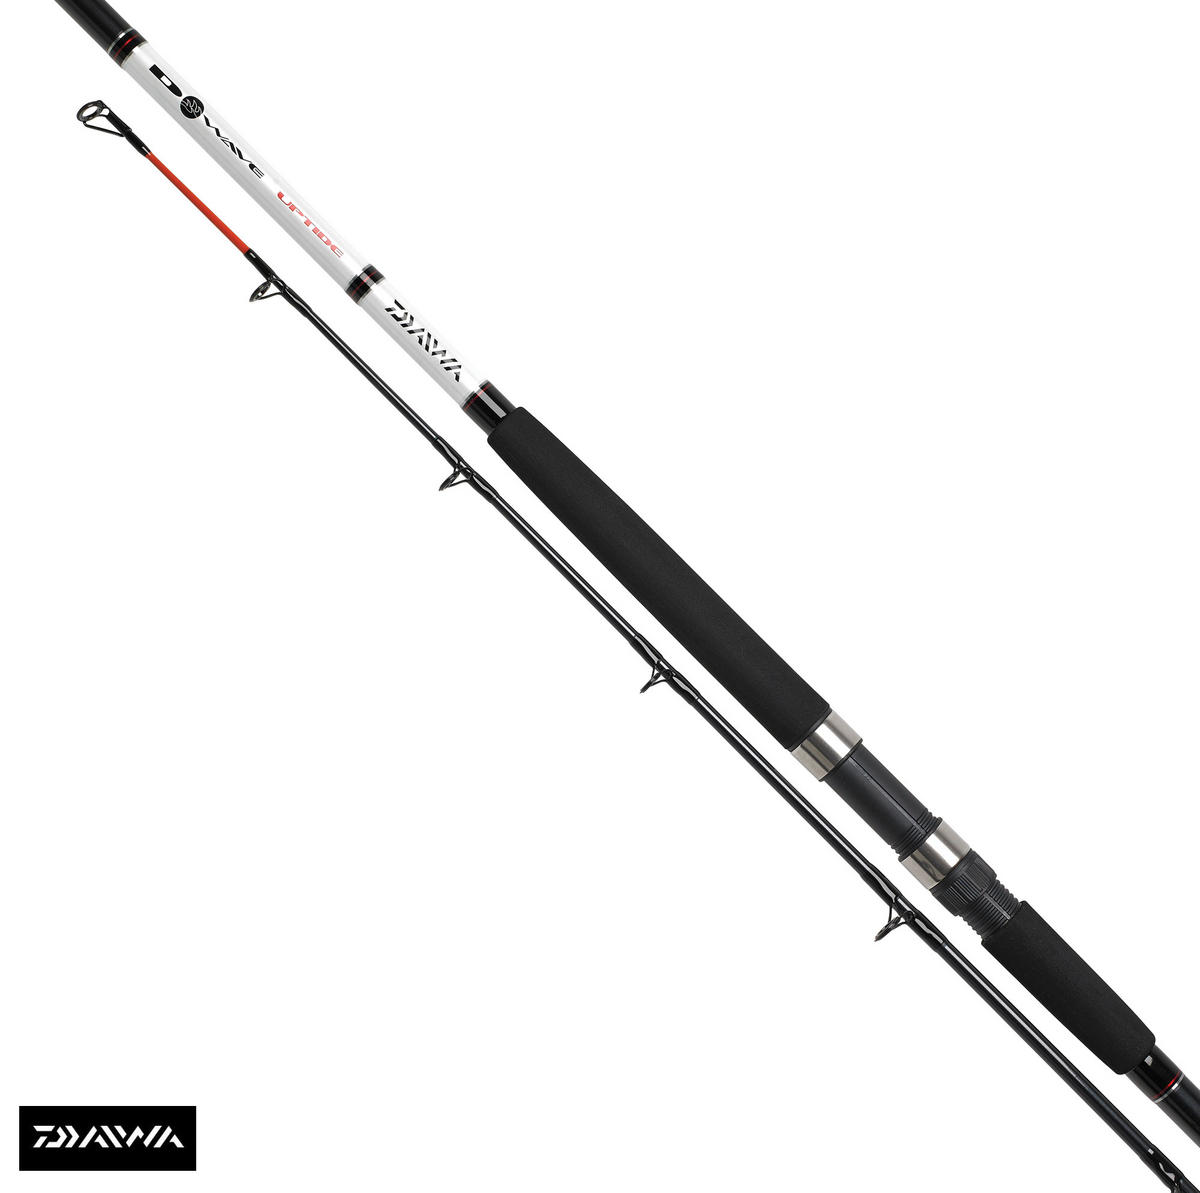 New Daiwa D Wave Uptide Sea Fishing Rod 9'6' 4-10oz Model No. DWU410-AU